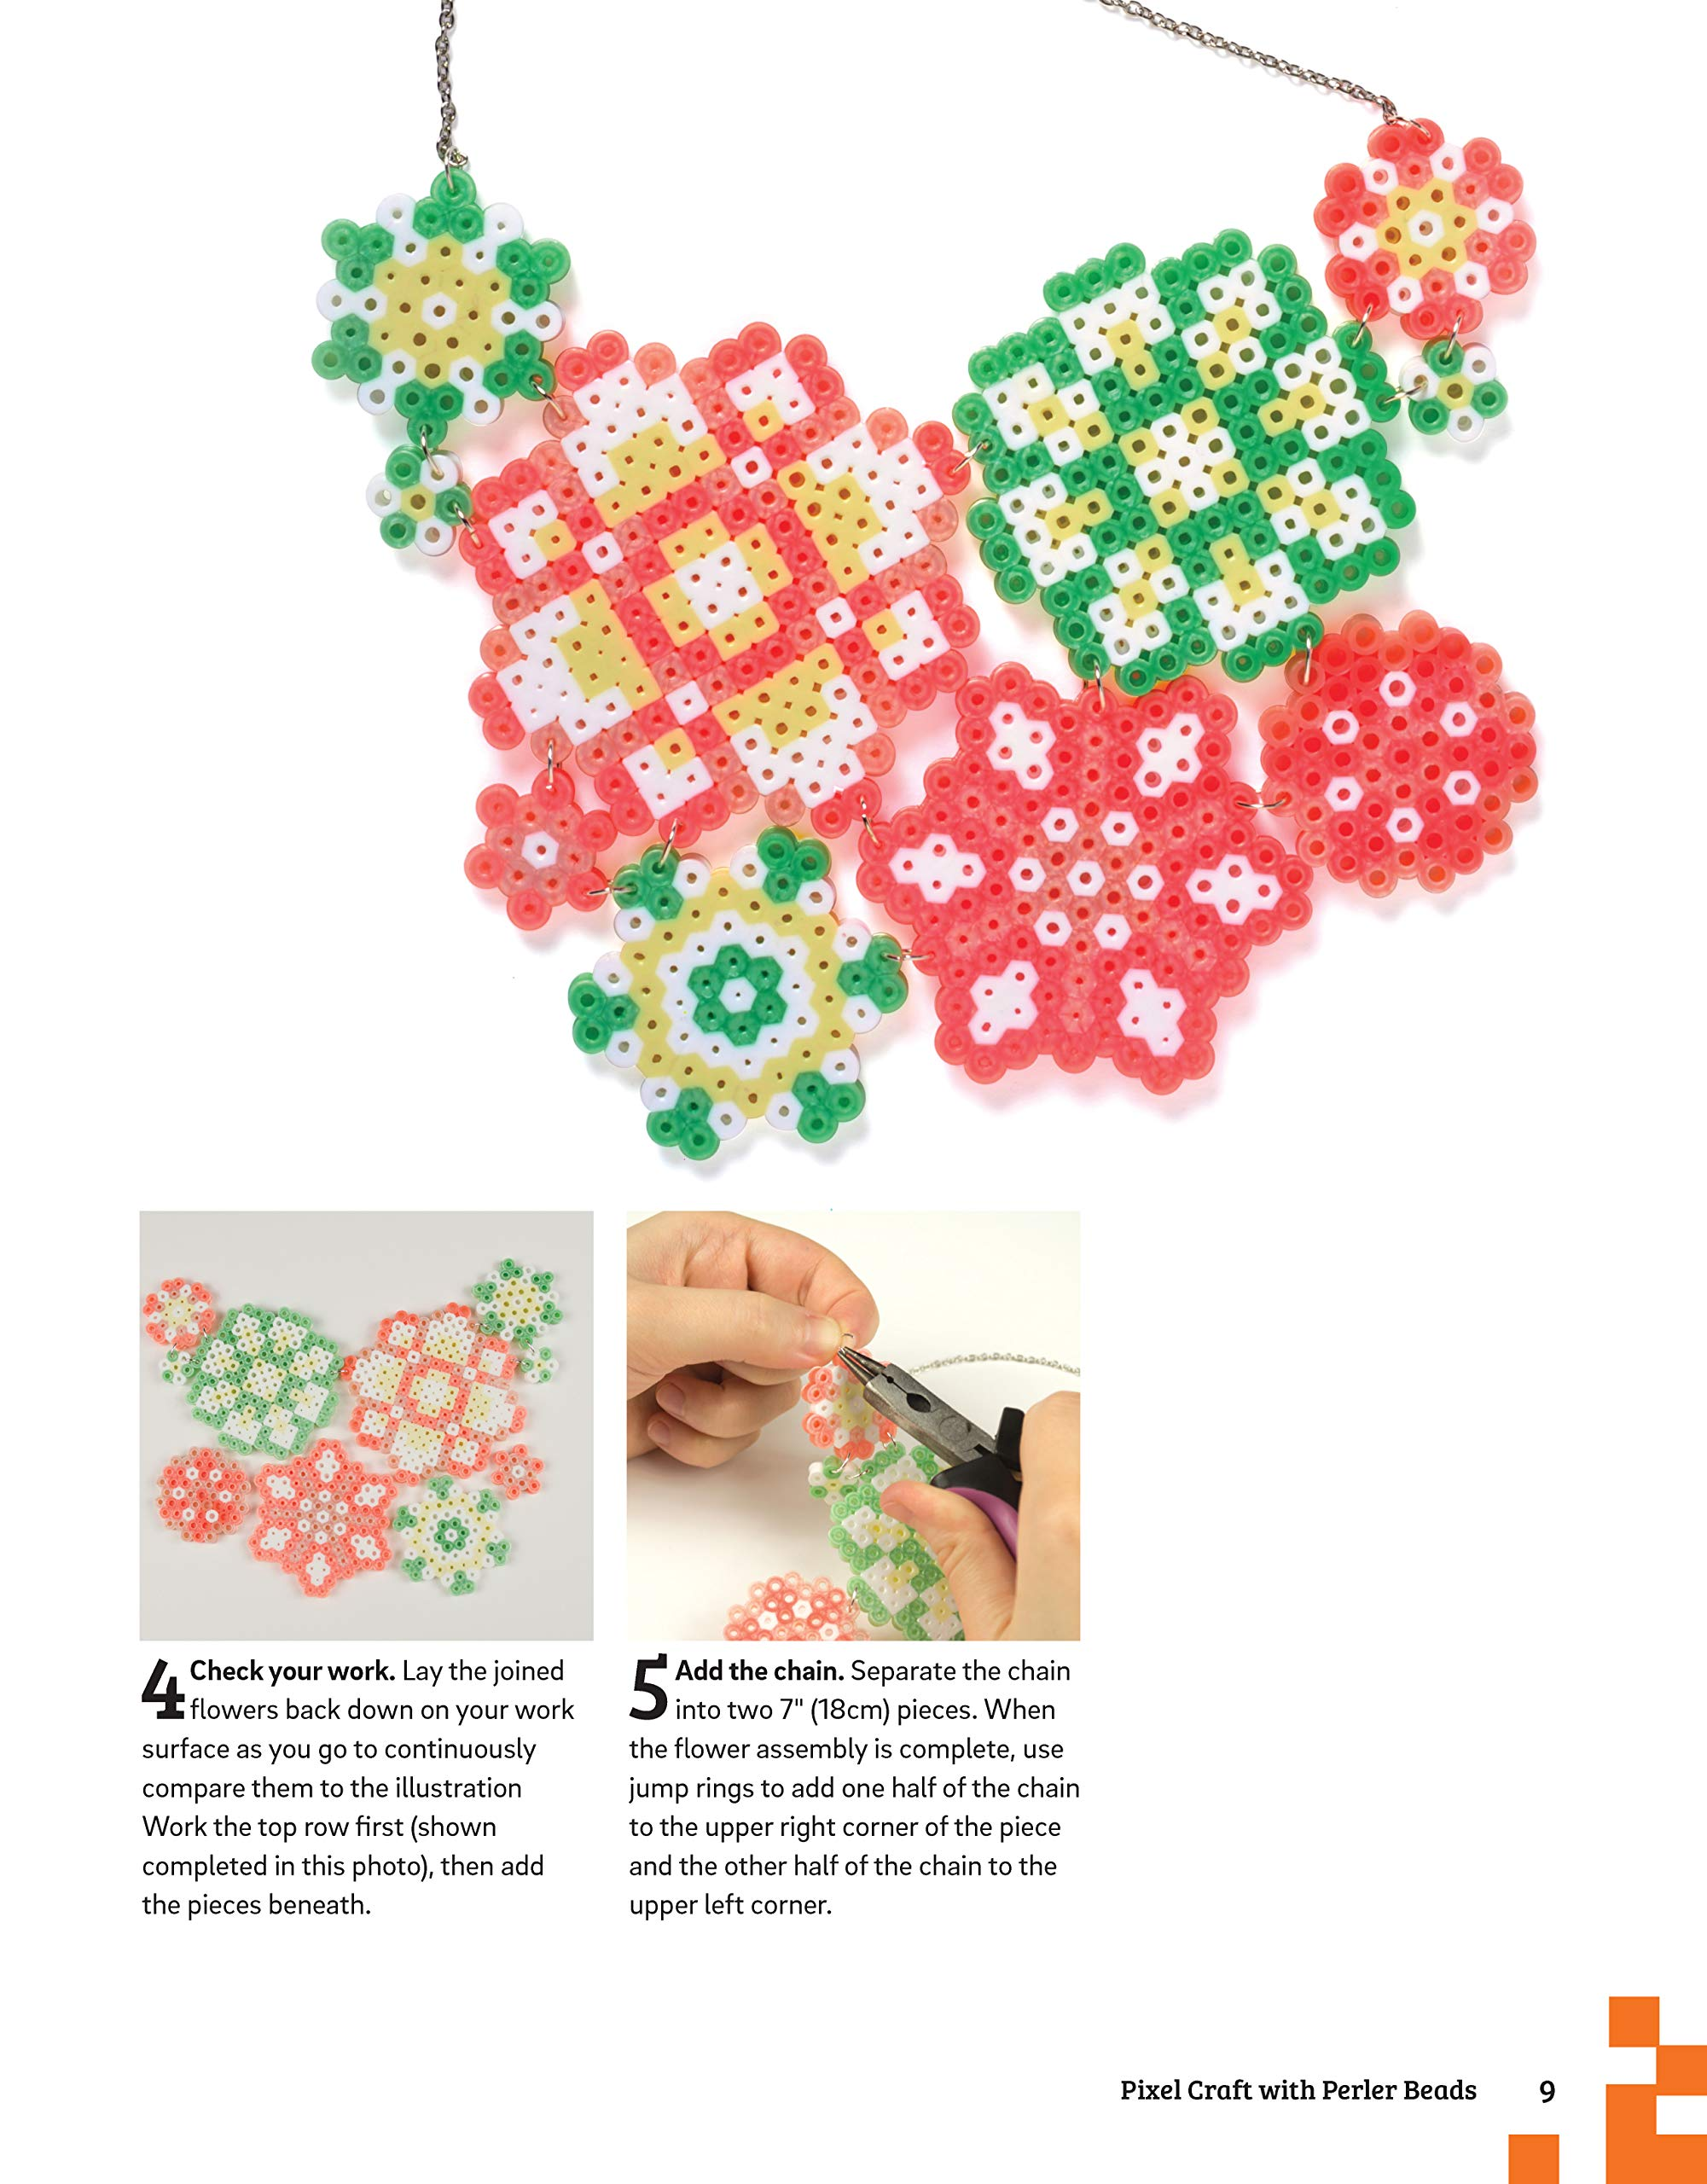 Amazon com: Pixel Craft with Perler Beads: More Than 50